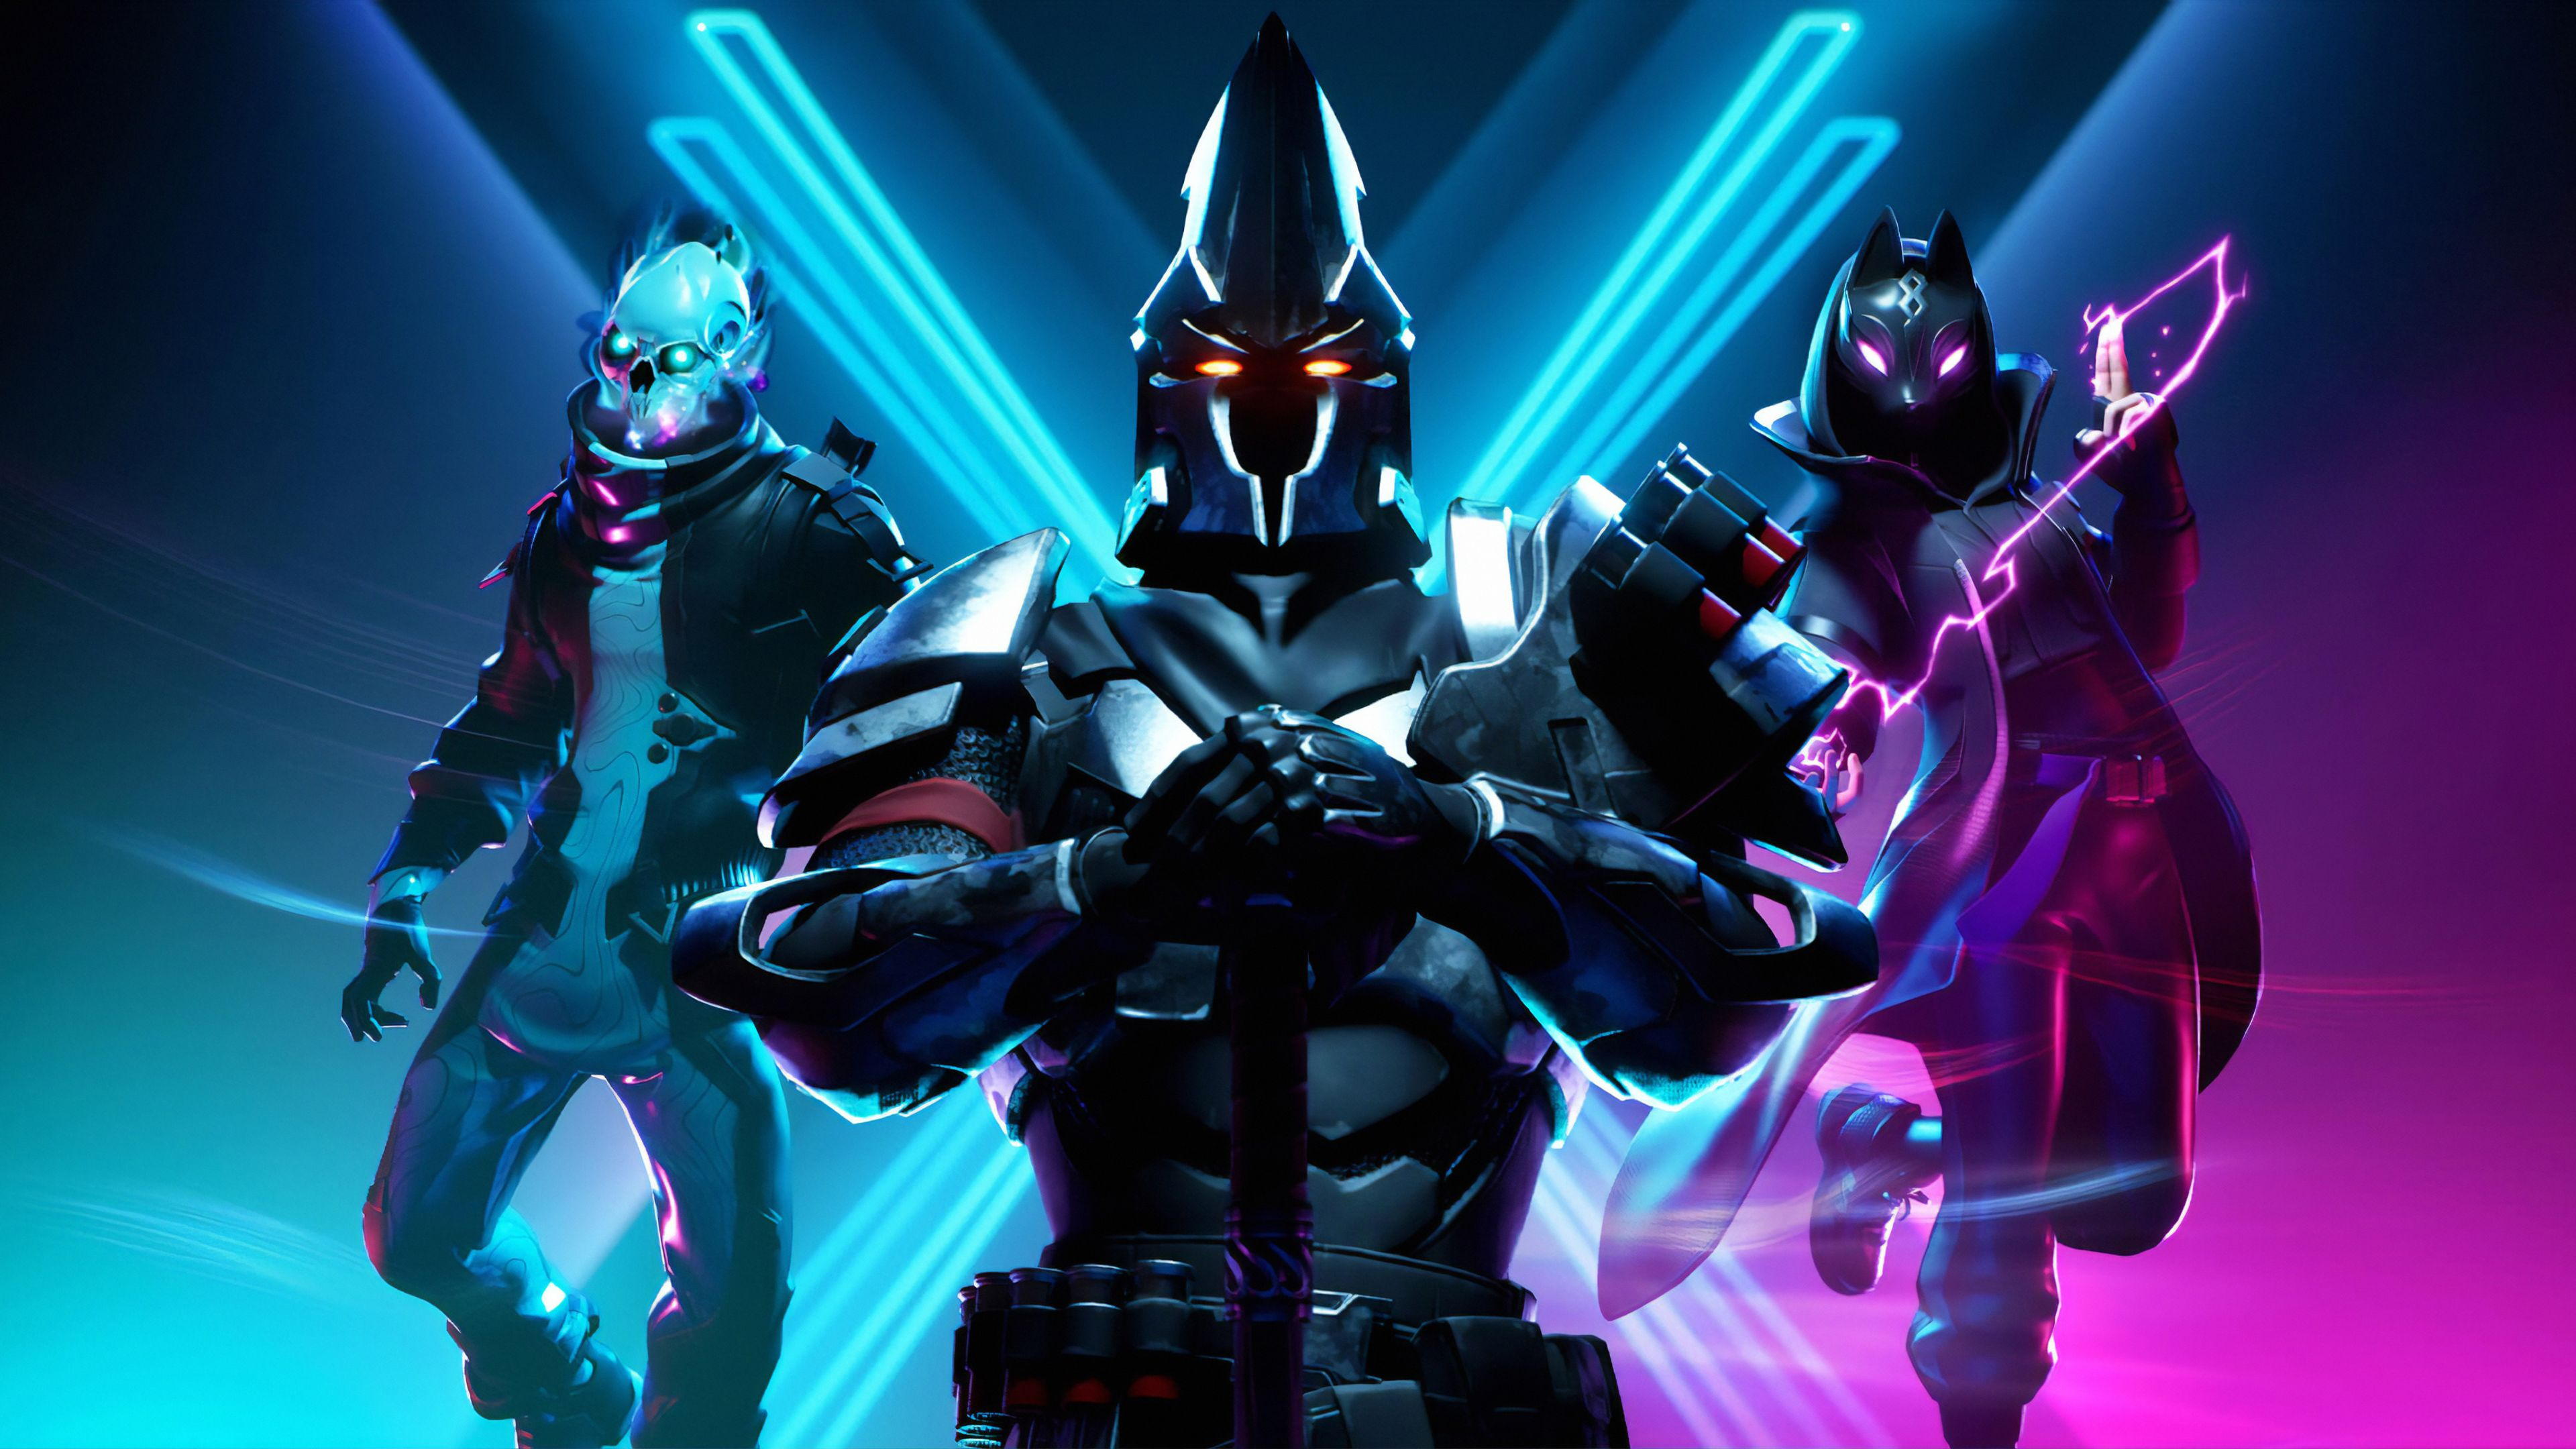 Fortnite Battle Royale New Season Hd Wallpapers Games Wallpapers Fortnite Wallpapers 4k Wallpapers Fortnite Epic Games Epic Games Fortnite